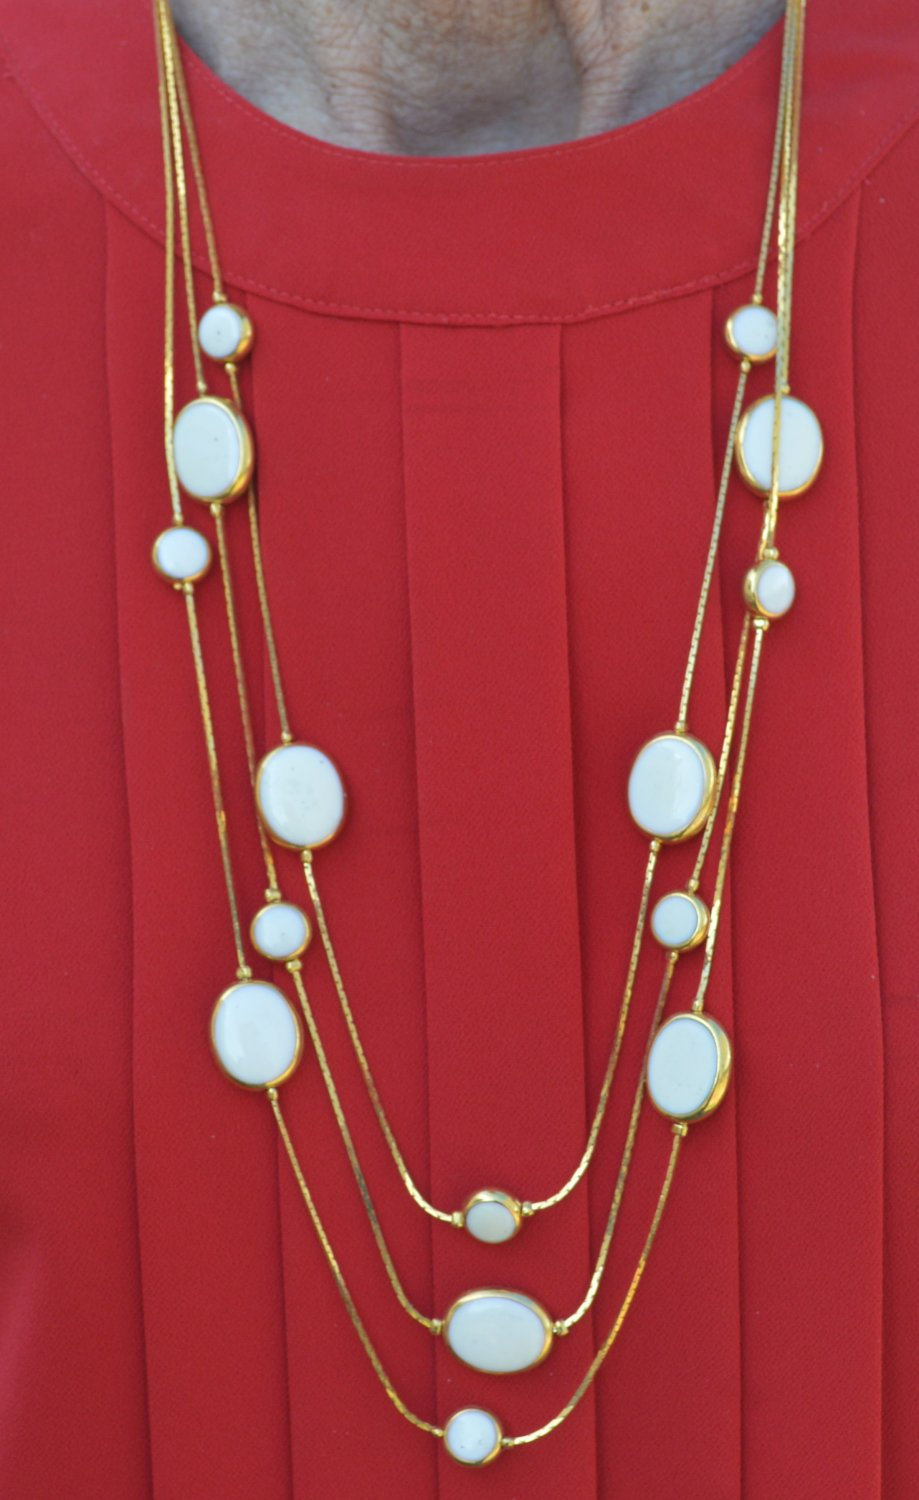 Avon Tri Necklace with White Stones - Eclectic #0046